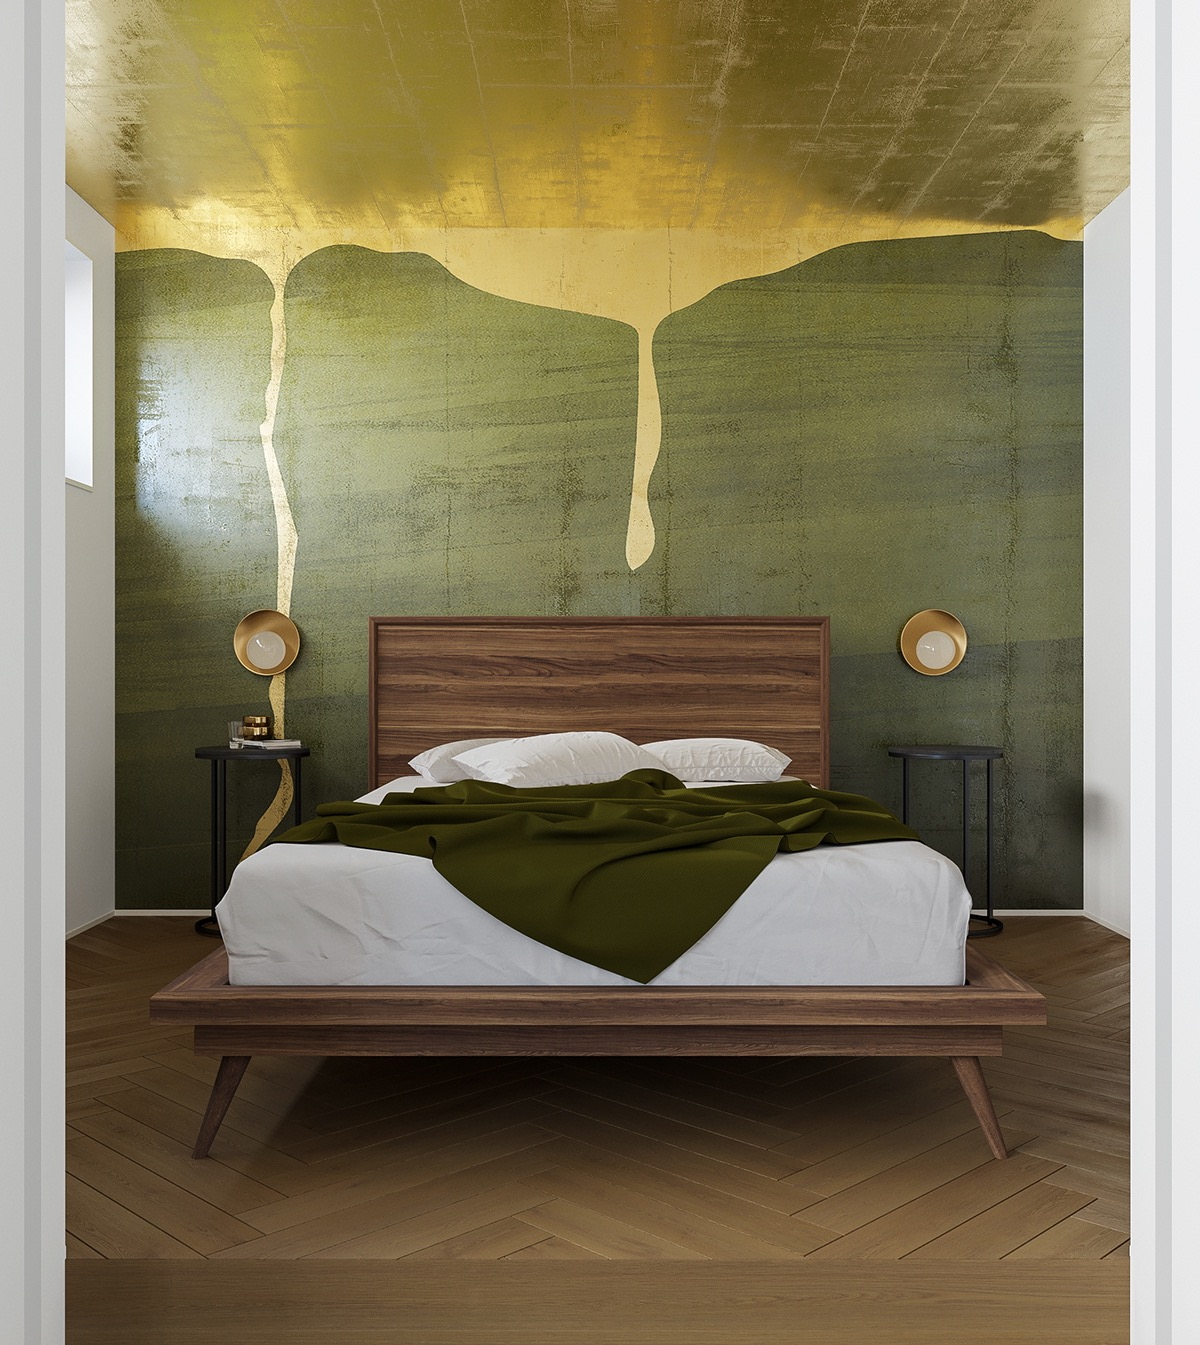 Picture of: 51 Green Bedrooms With Tips And Accessories To Help You Design Yours